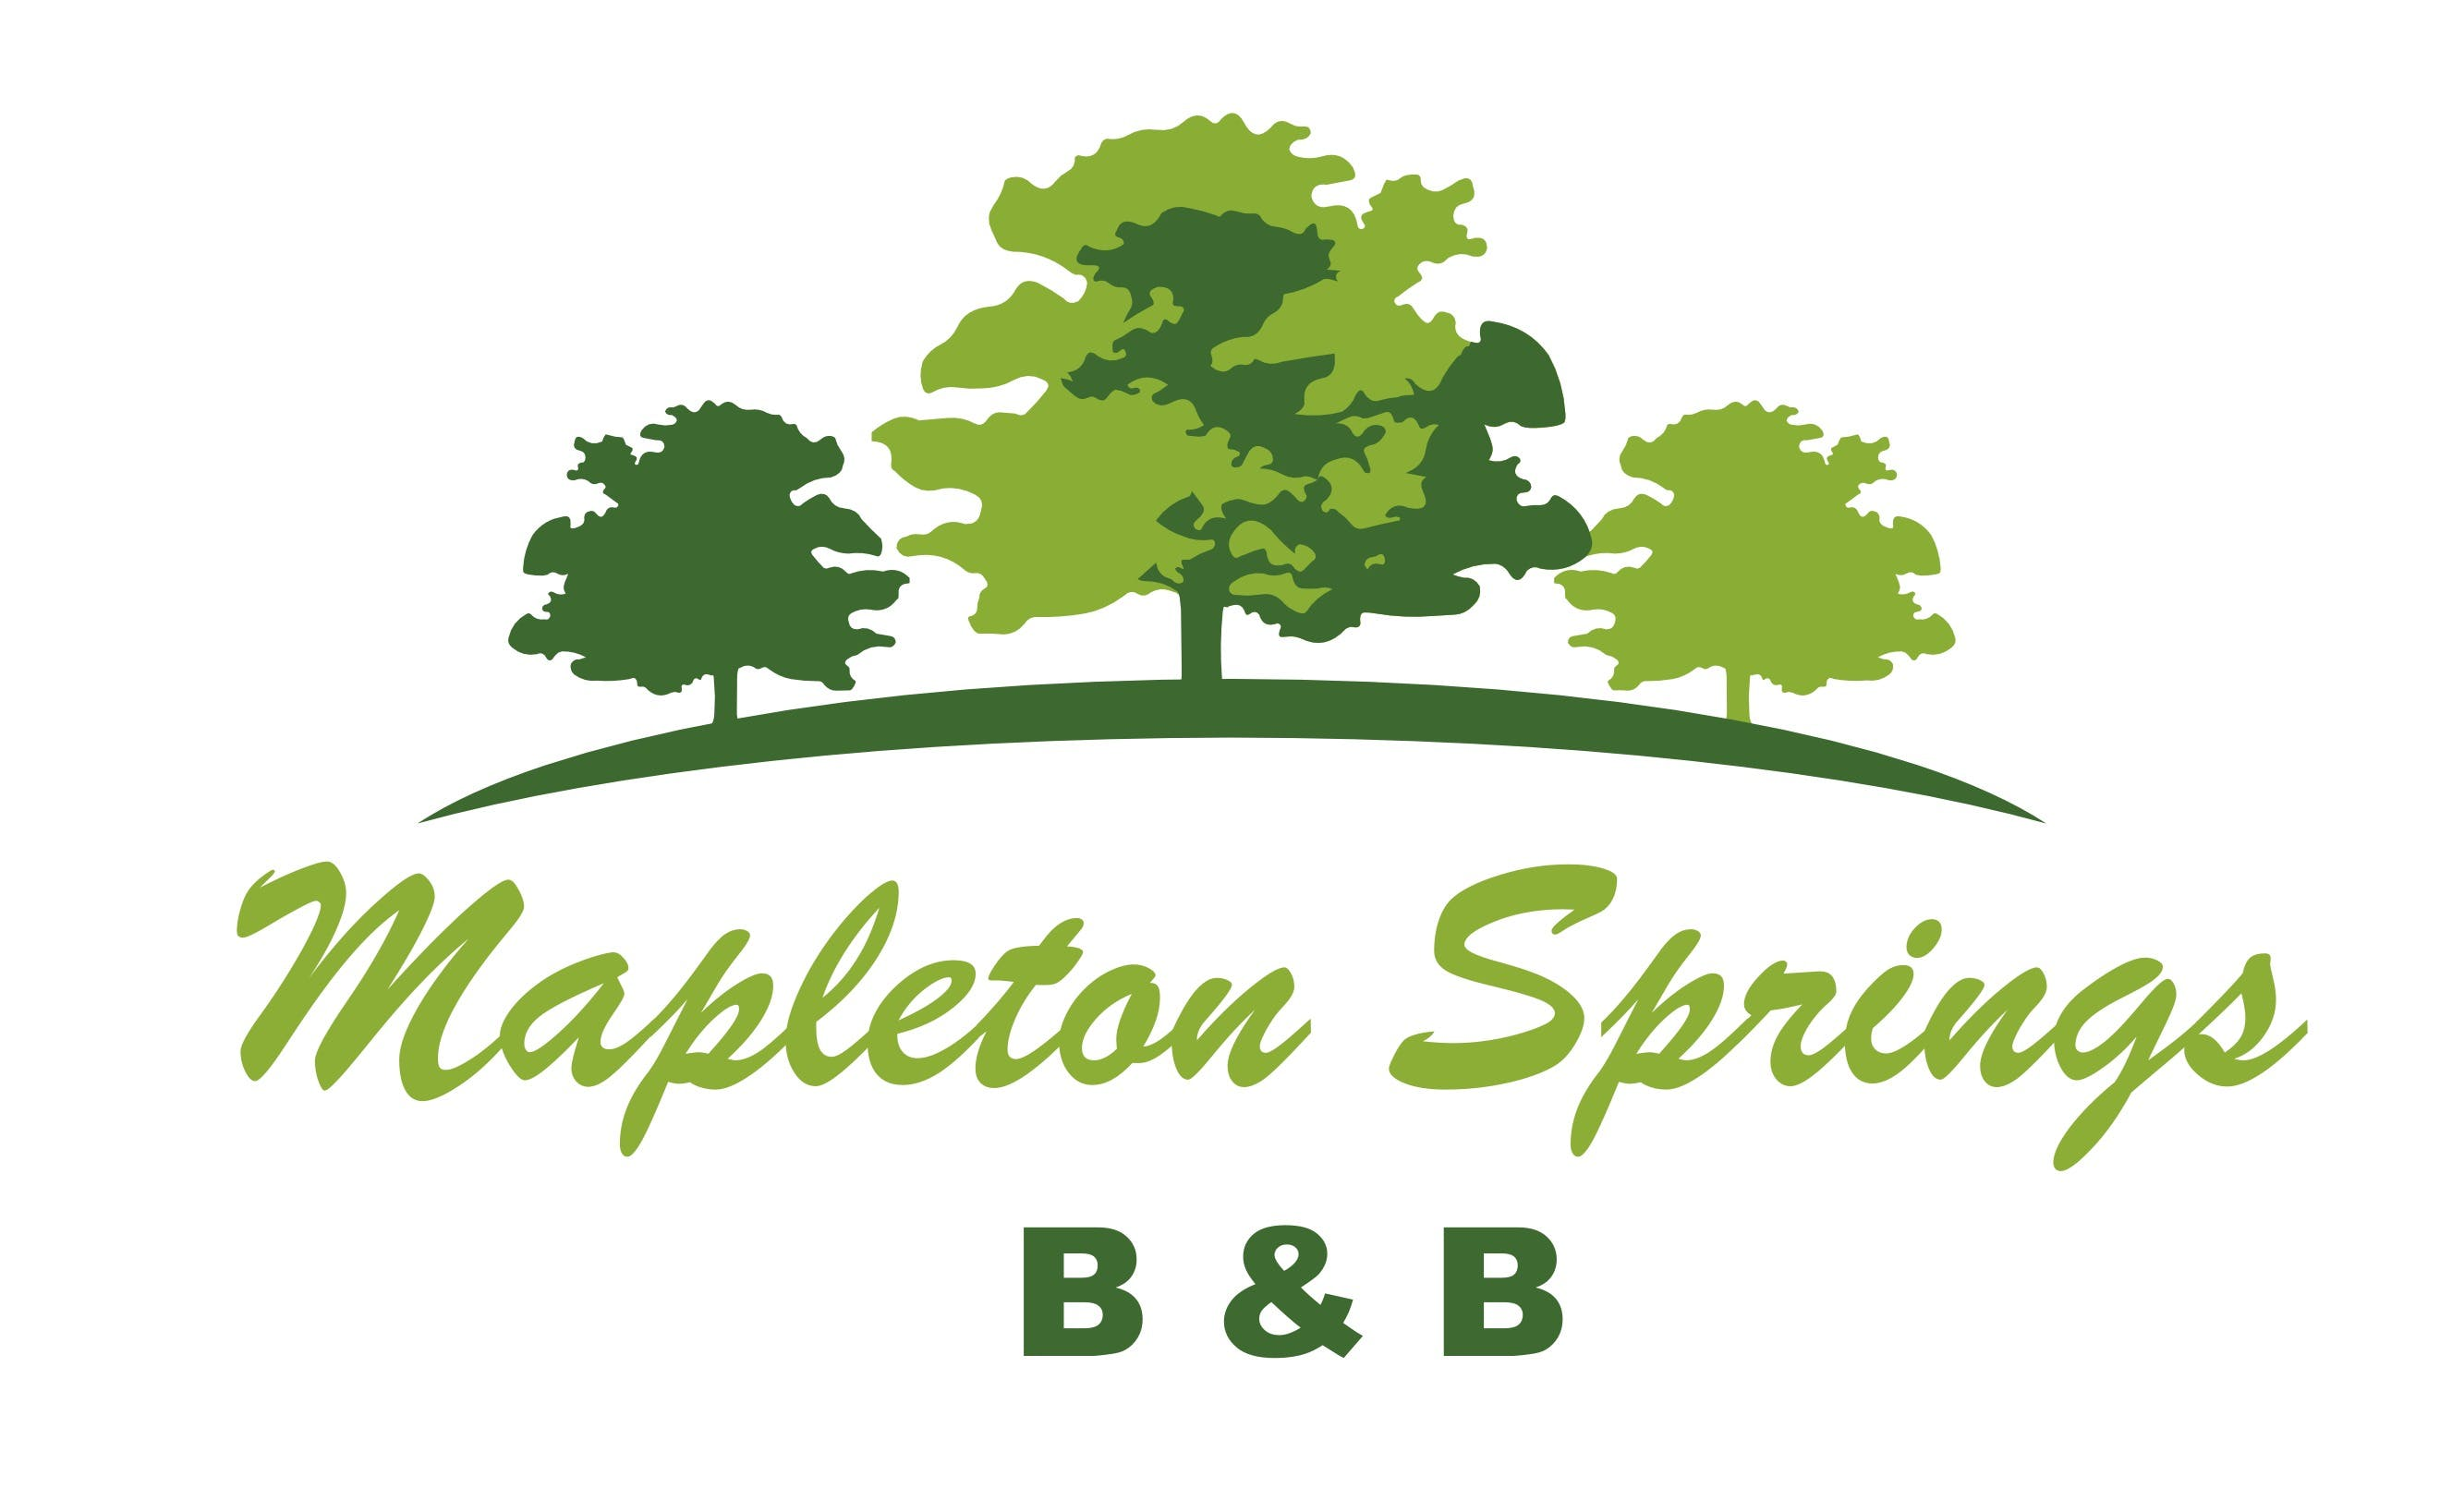 Mapleton Springs B&B